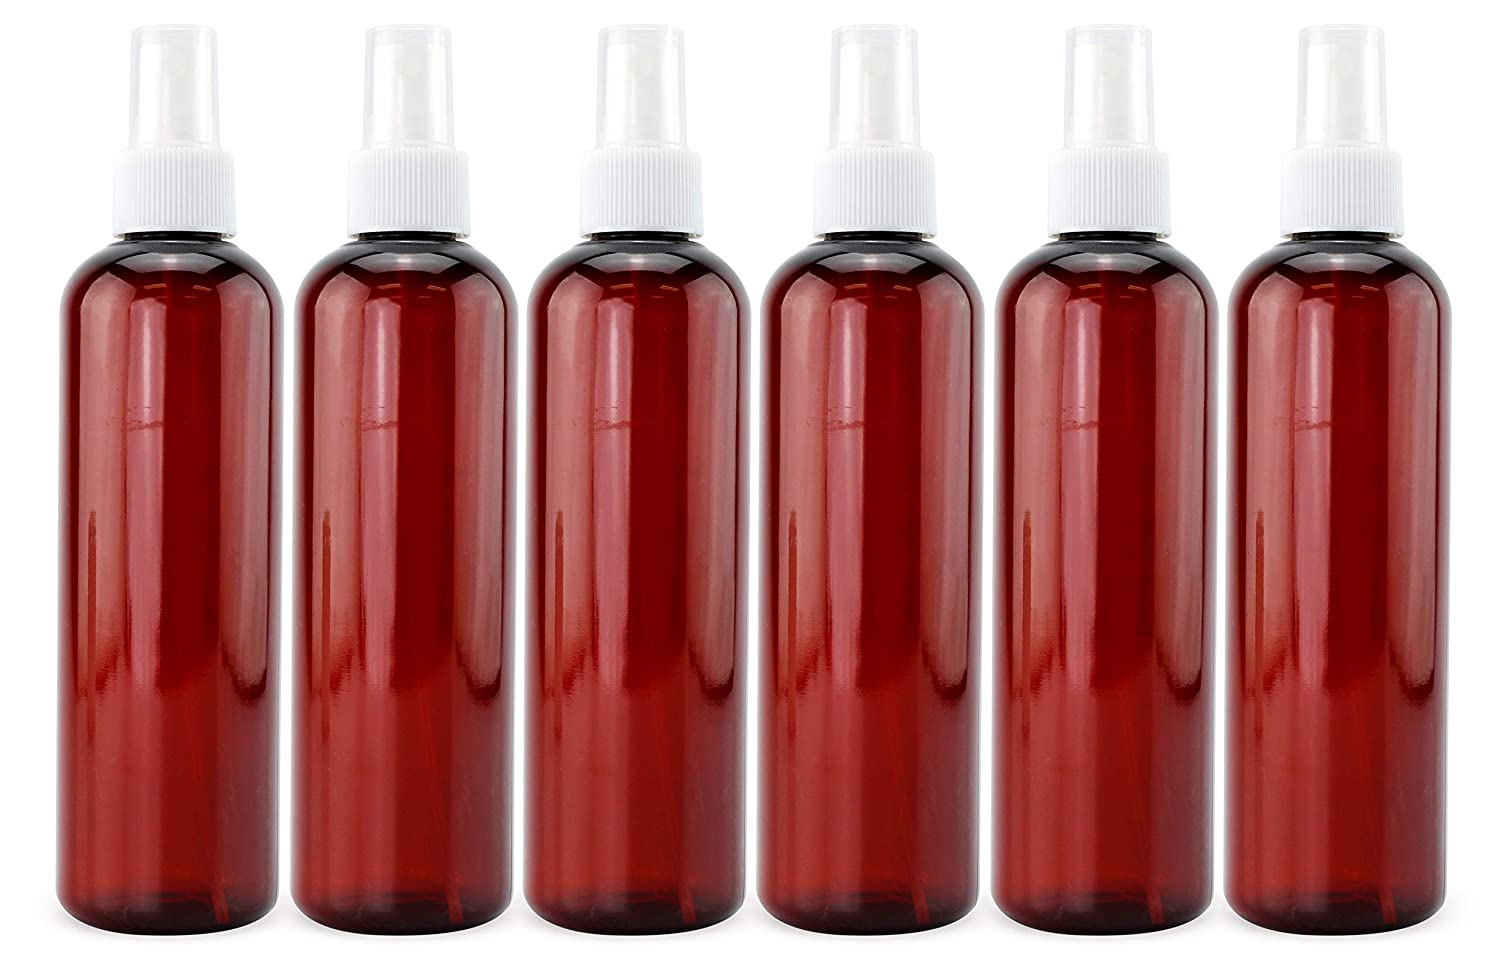 Cornucopia 8oz Amber Brown PLASTIC Spray Bottles with White Fine Mist Atomizers (6-Pack); Brown Plastic Spritzer Bottles for DIY Home Cleaning, Aromatherapy, Beauty Care